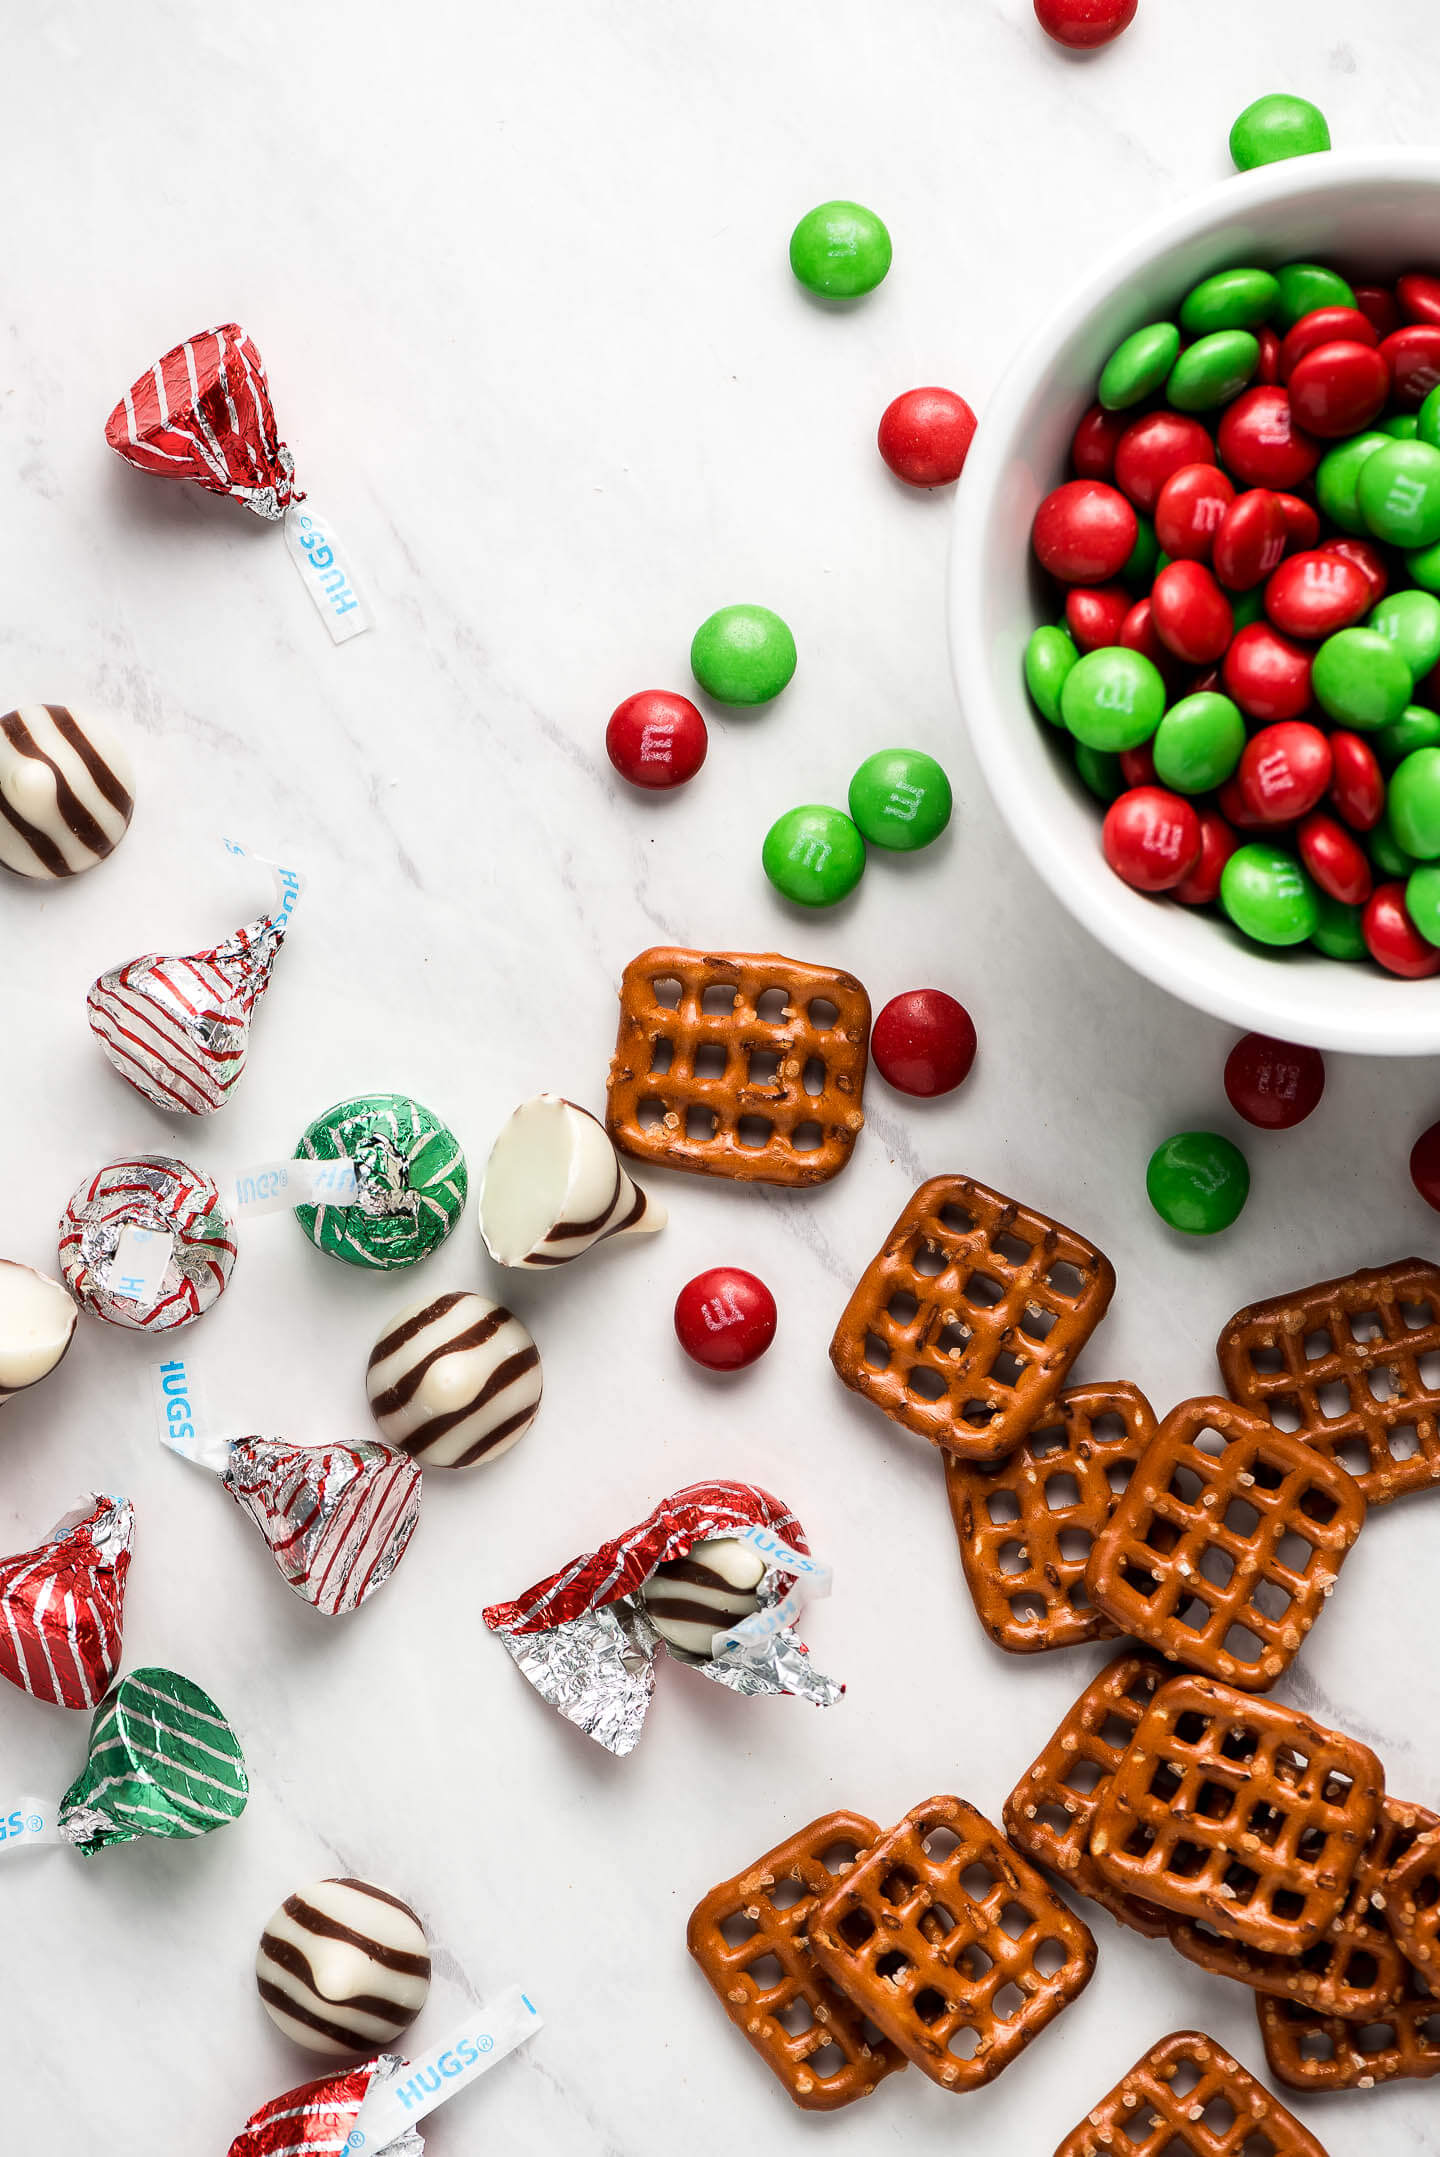 Snap pretzels, Hershe's Hugs, and red & green M&M's on a marble surface.